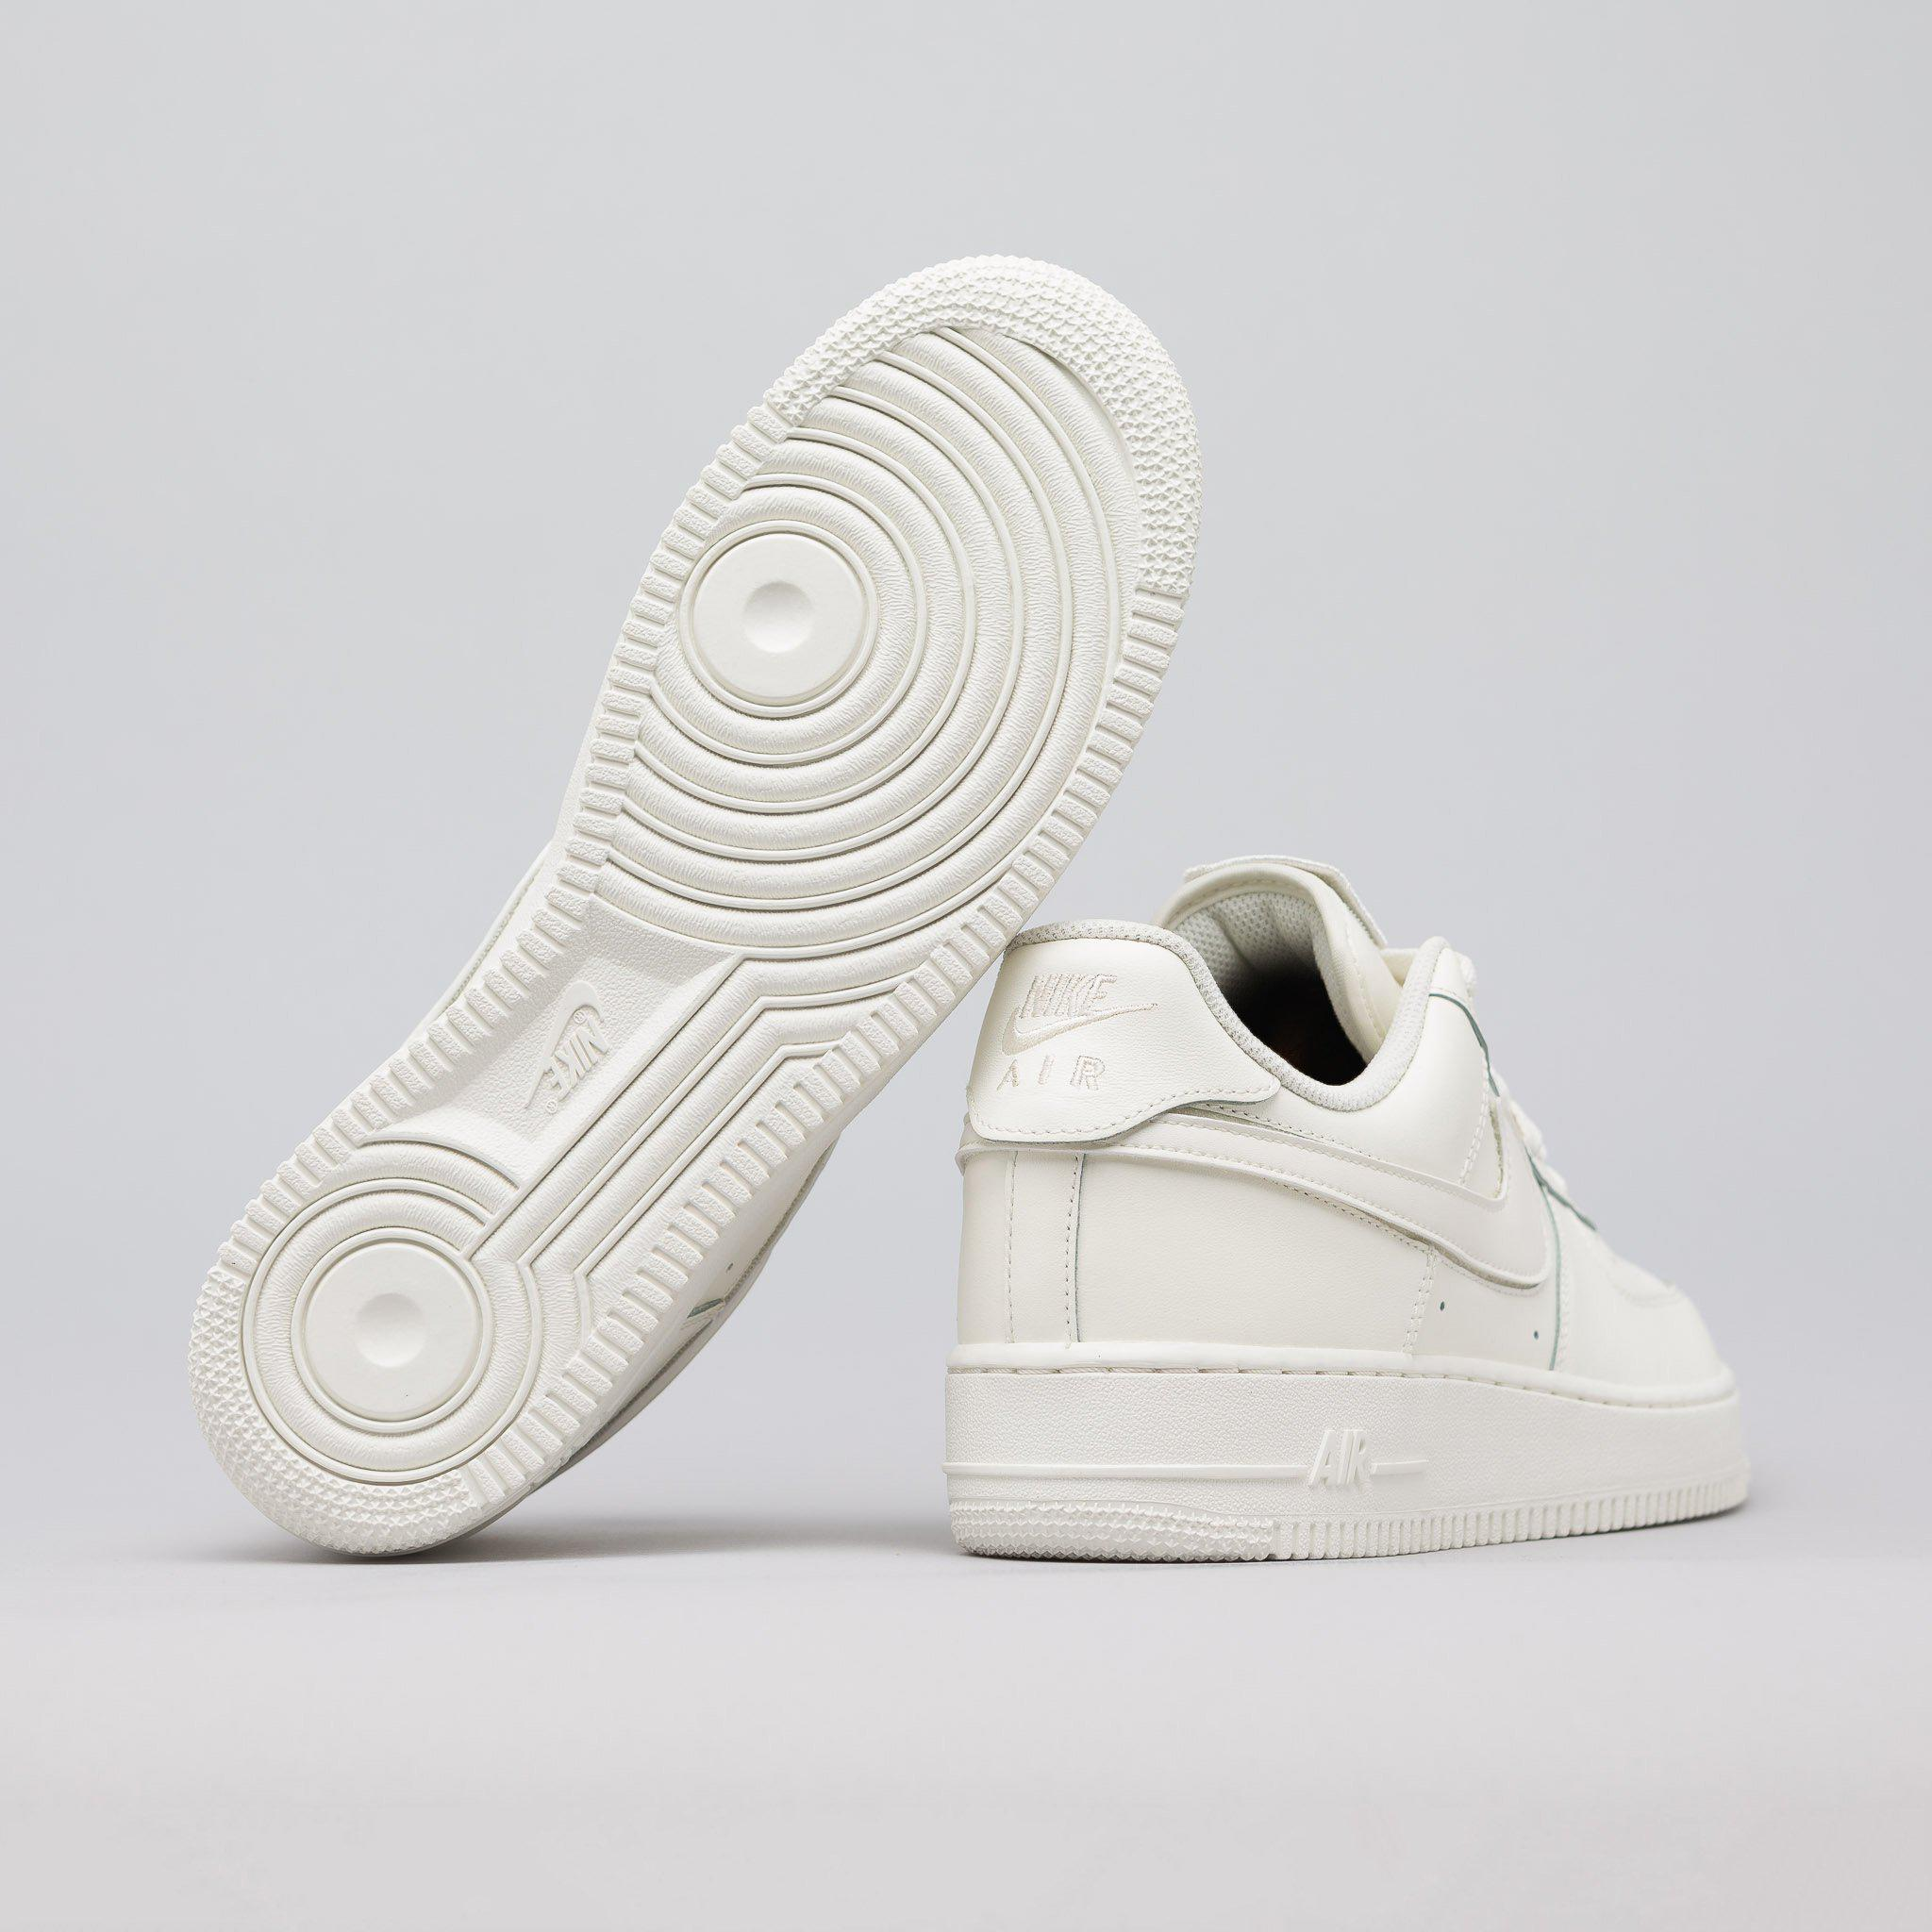 Lyst - Nike Air Force 1 07 Swoosh Pack In Sail in White for Men 085d623f3